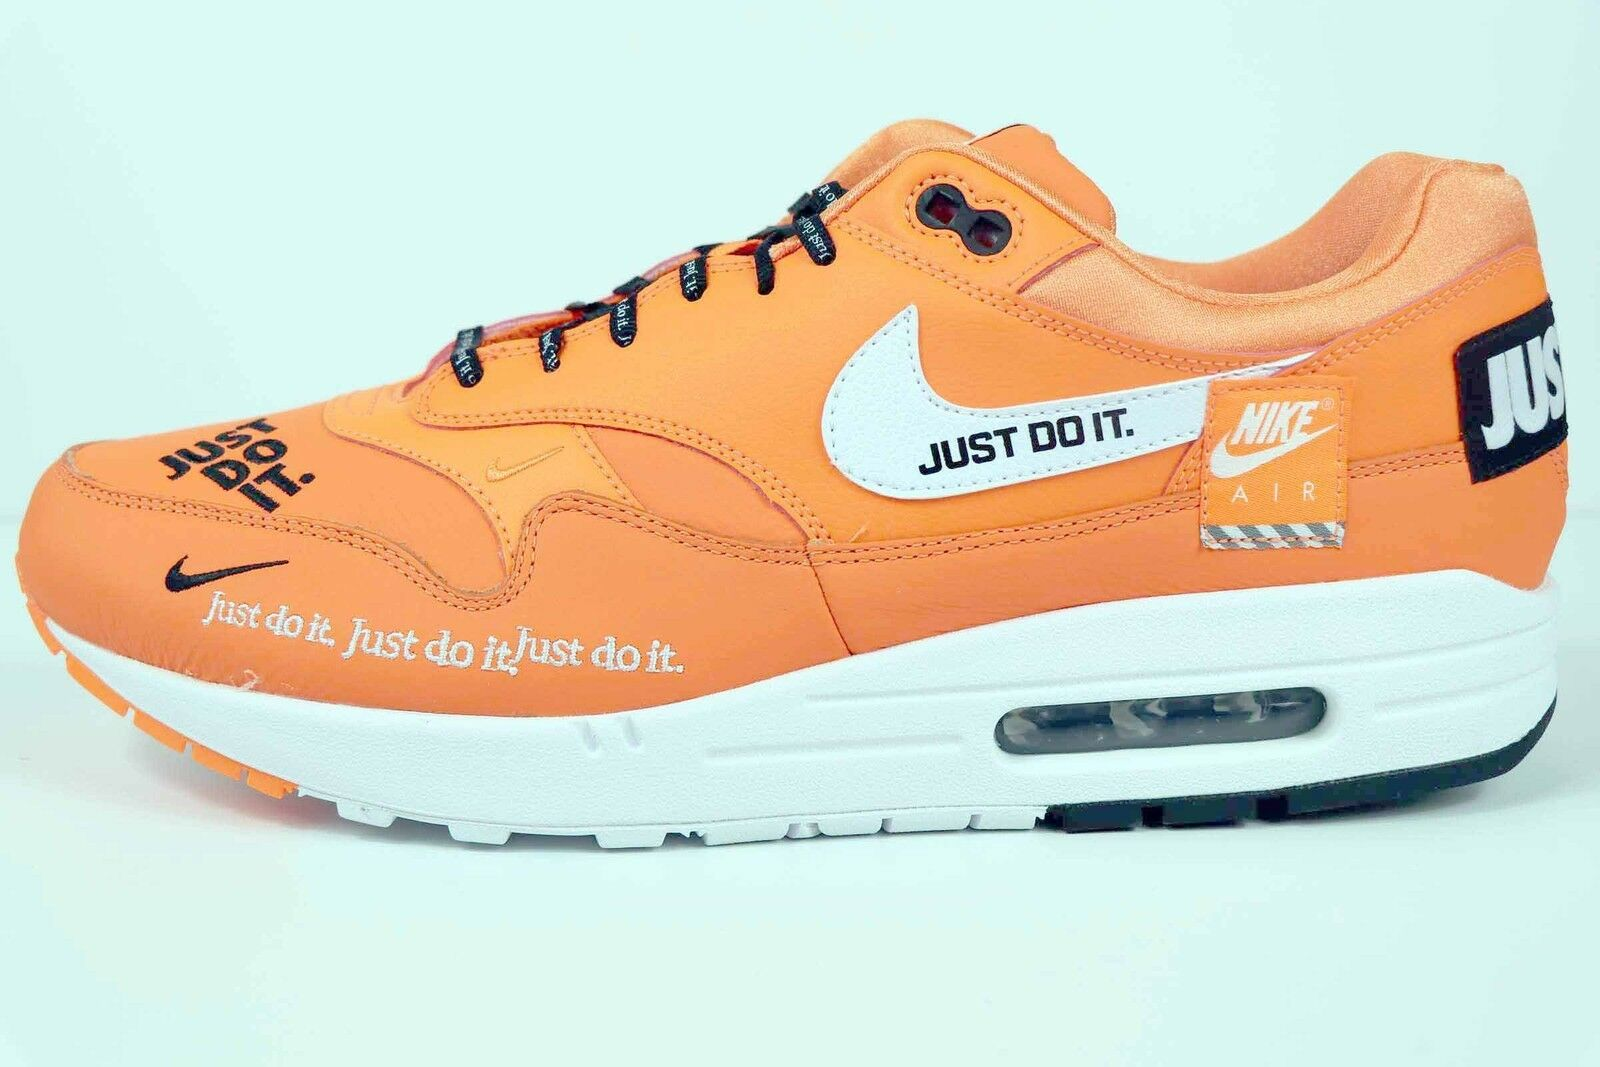 Nike Air Max 1 SE JDI Just Do It Total Orange White Black AO1021 800 Size 13 New